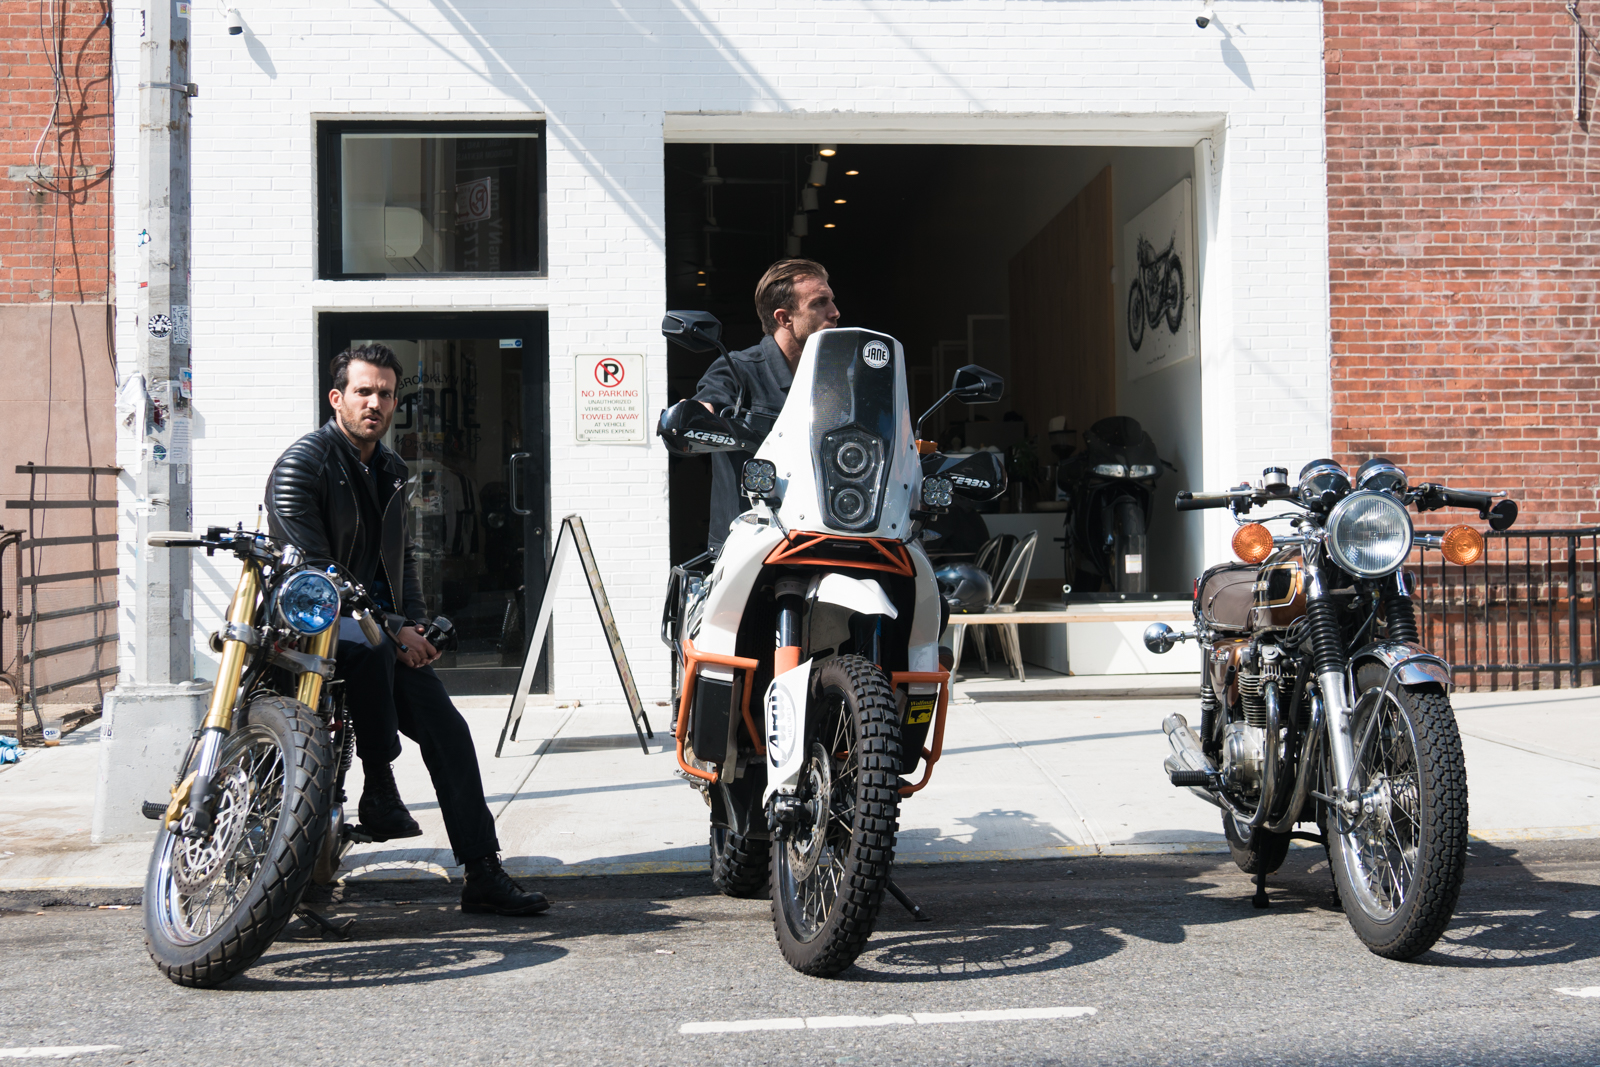 Learn About the Art of Bike Restoration and Customization From JANE Motorcycles in Brooklyn